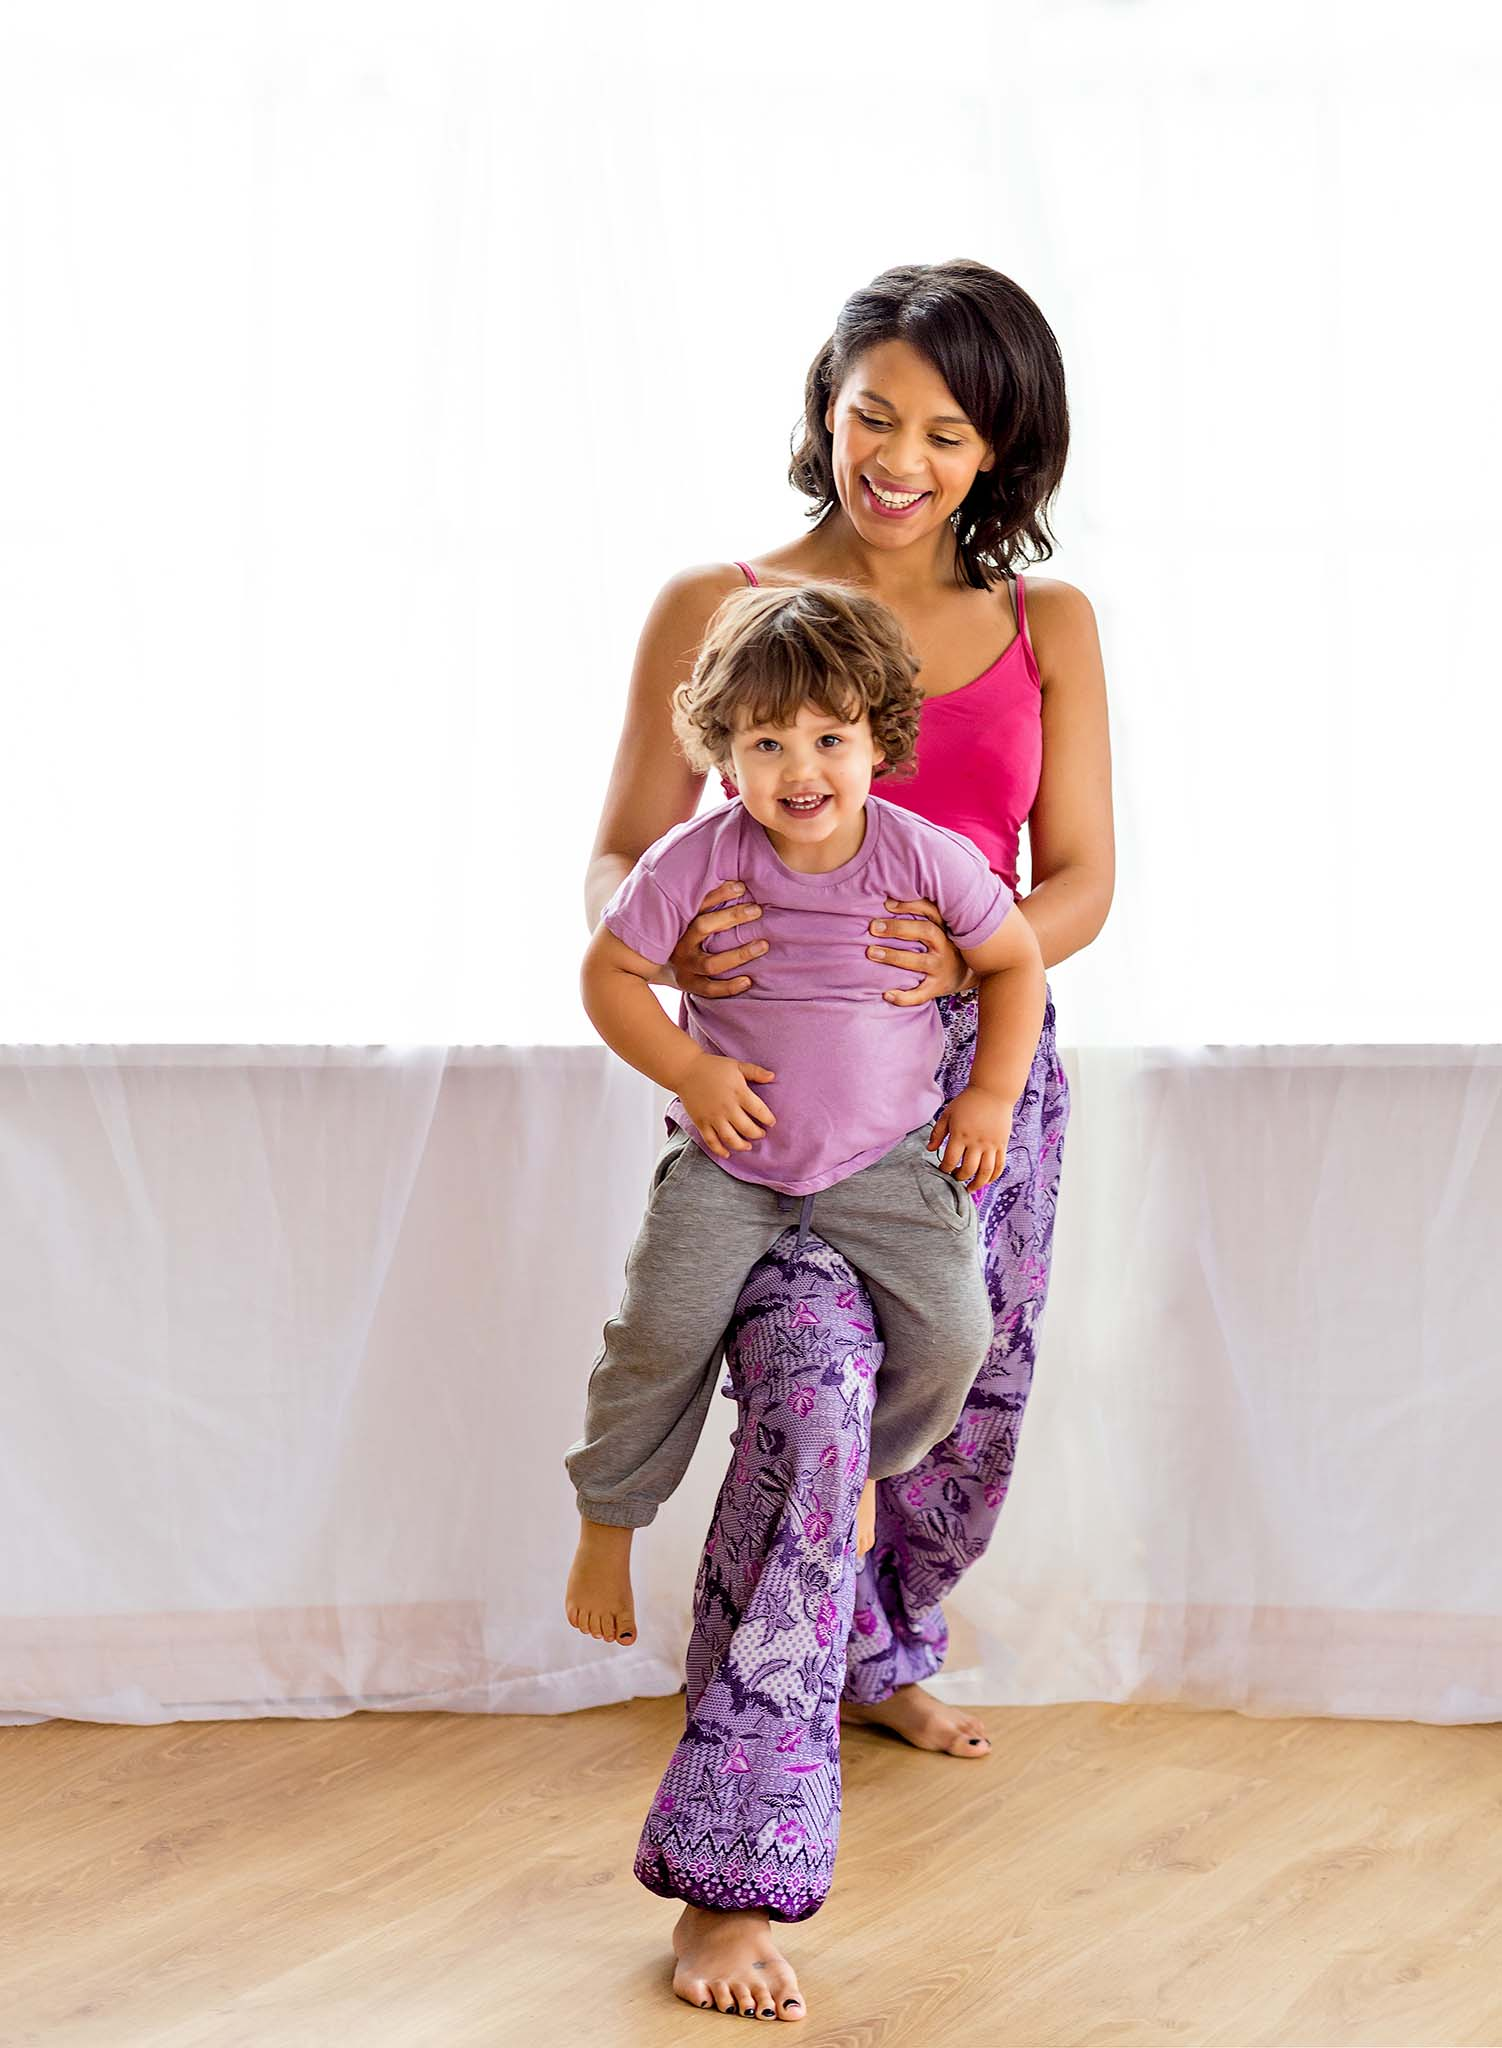 Children yoga instructor business photography